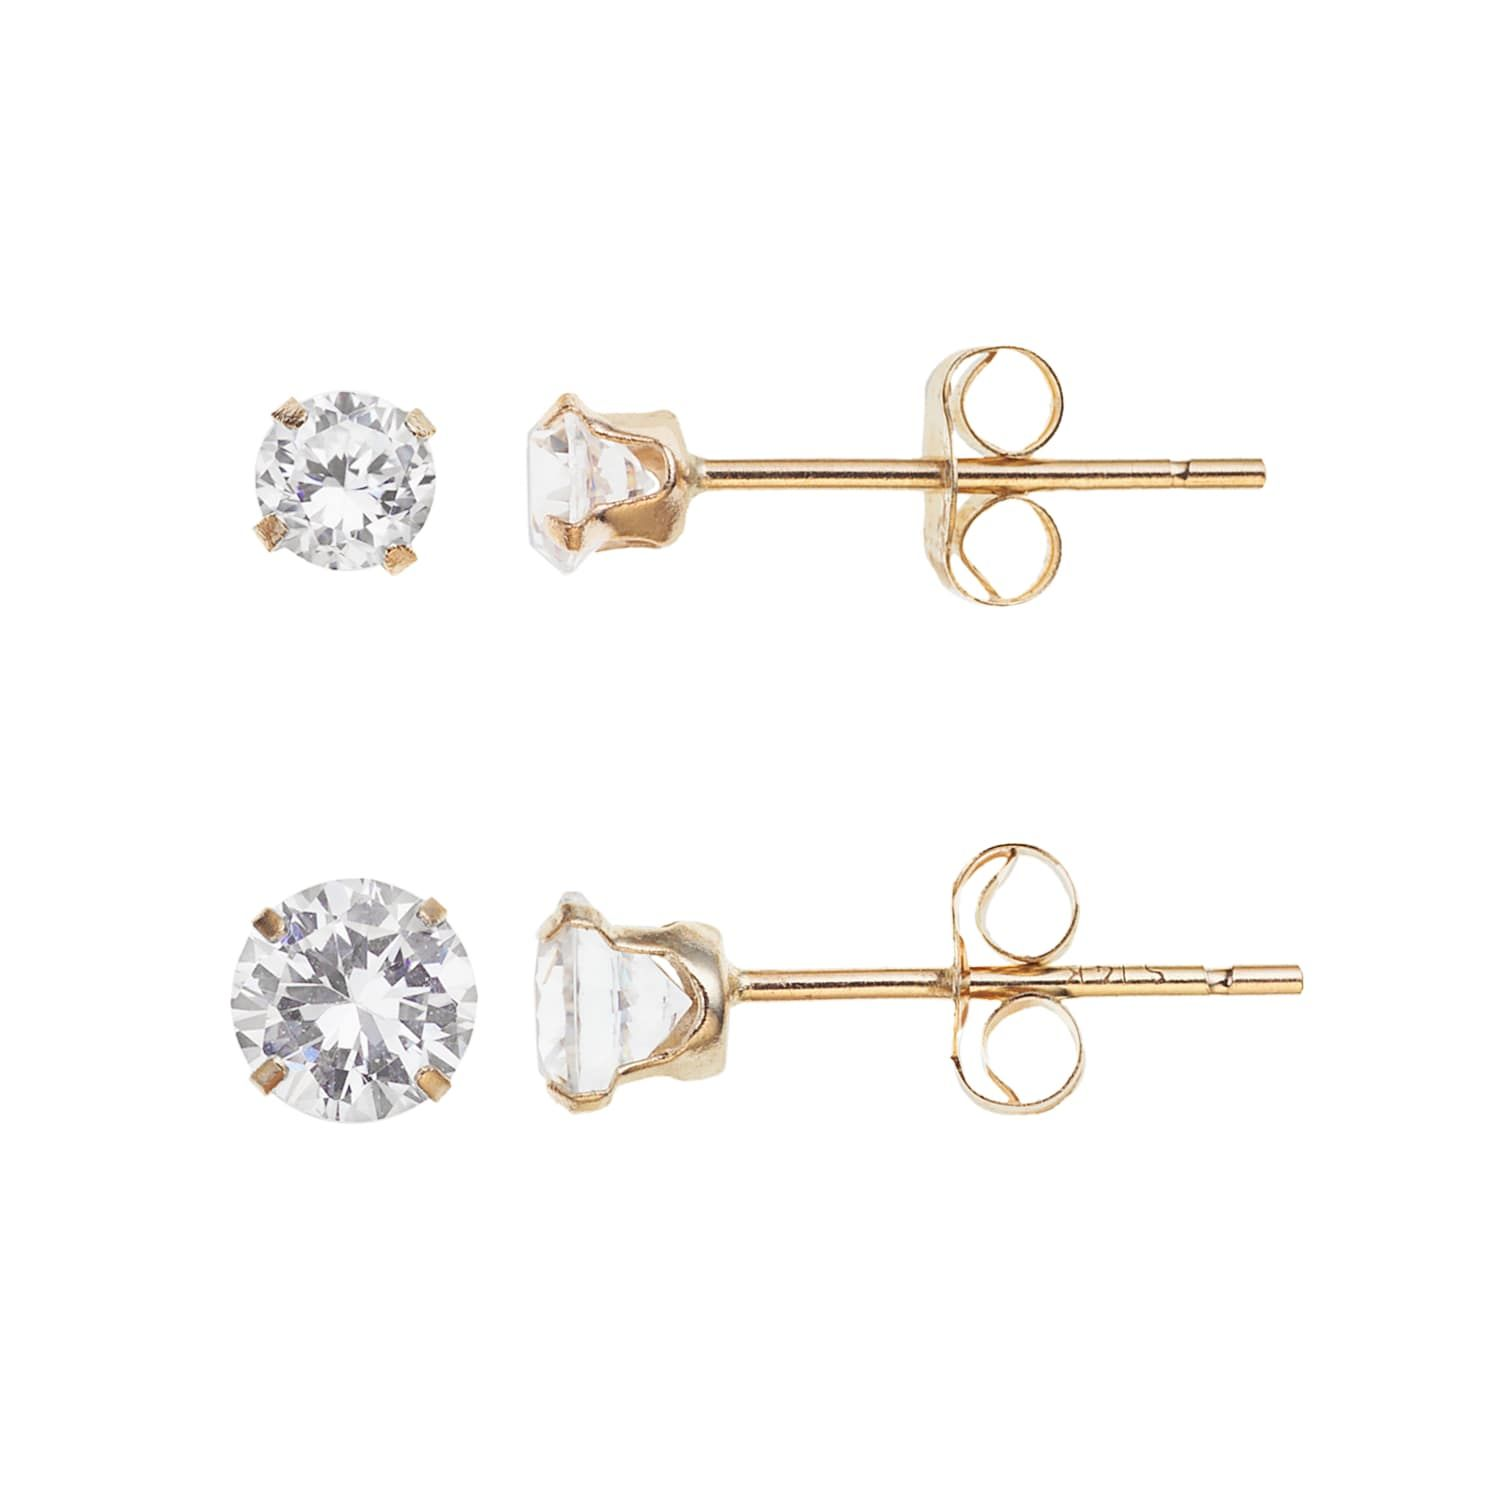 10k Gold Cubic Zirconia Stud Earring Set Stud Earrings Set Stud Earrings Earring Set